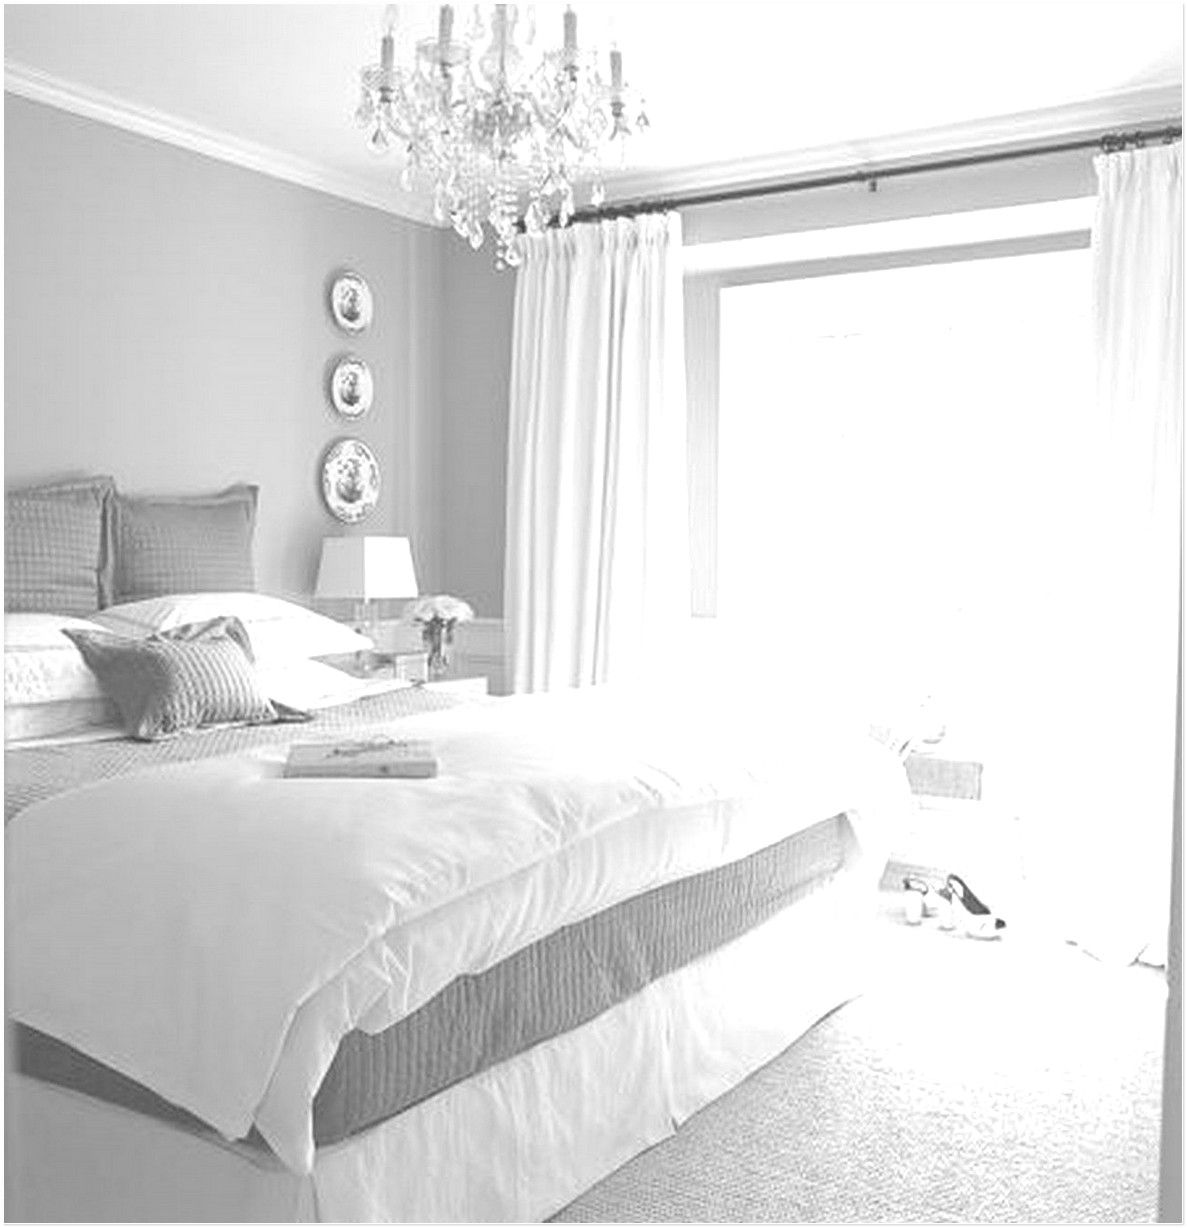 86 Images Of Simple Bedroom Decorating Ideas With Beautiful Color White Bedroom Grey And White Room White Master Bedroom